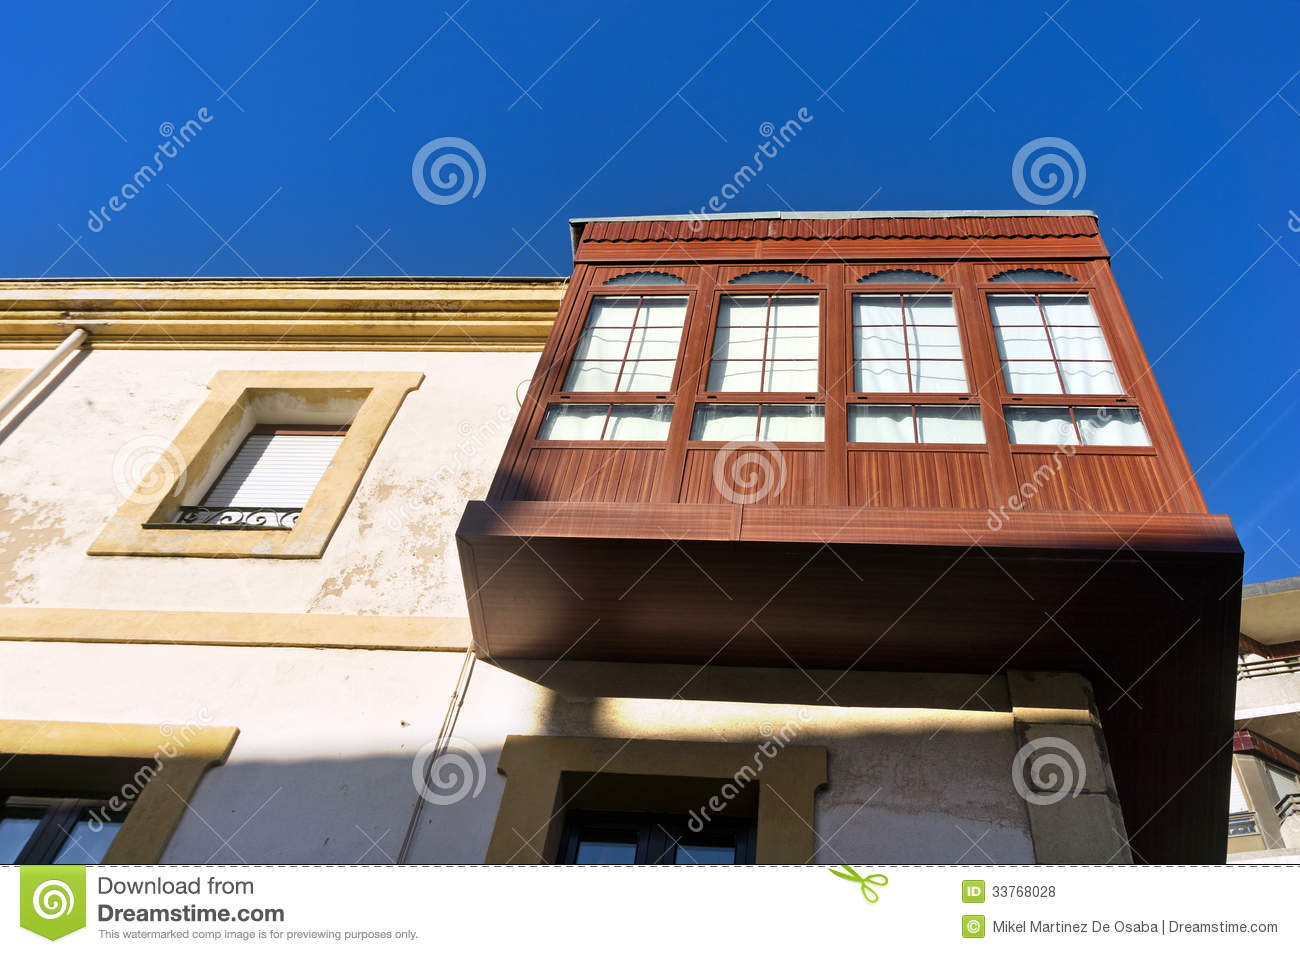 Wooden attic with windows